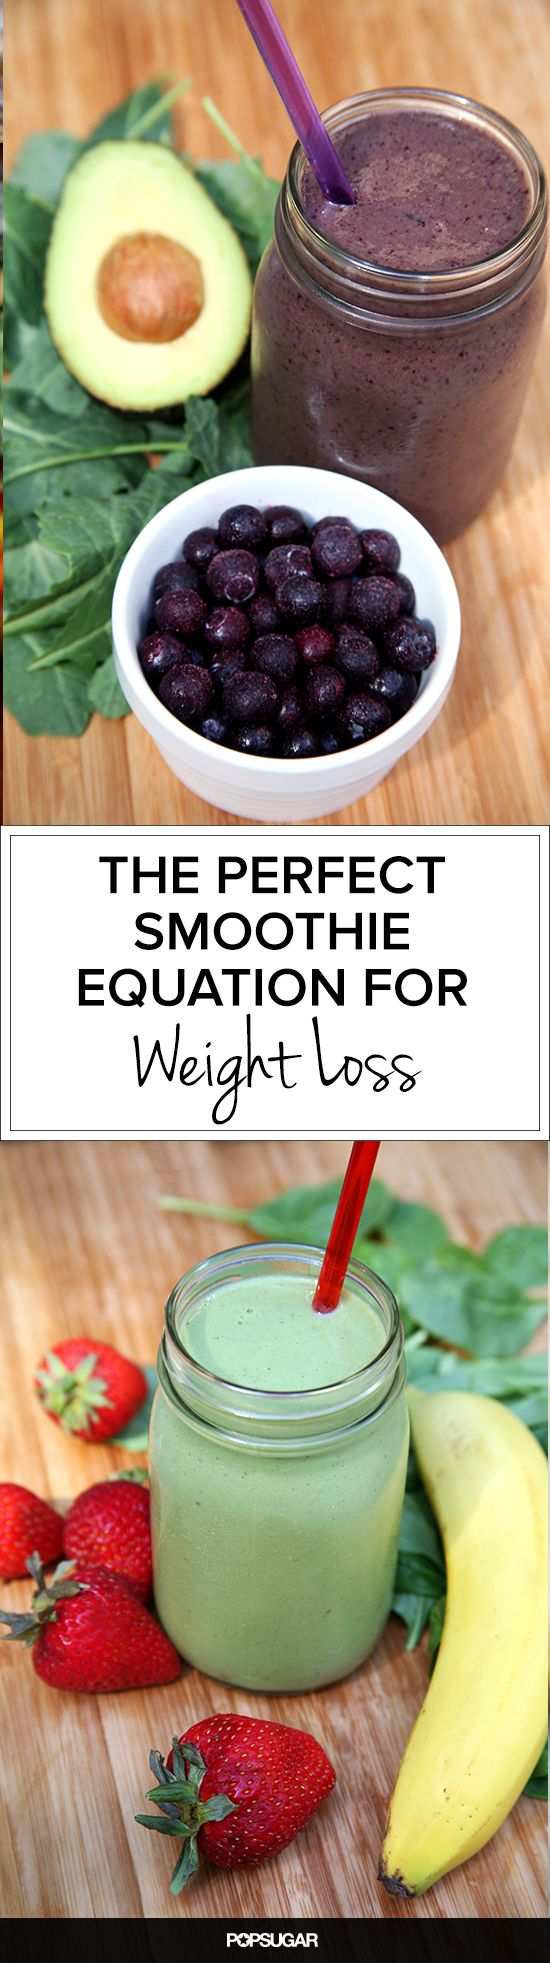 The Perfect Smoothie Equation For Weight Loss